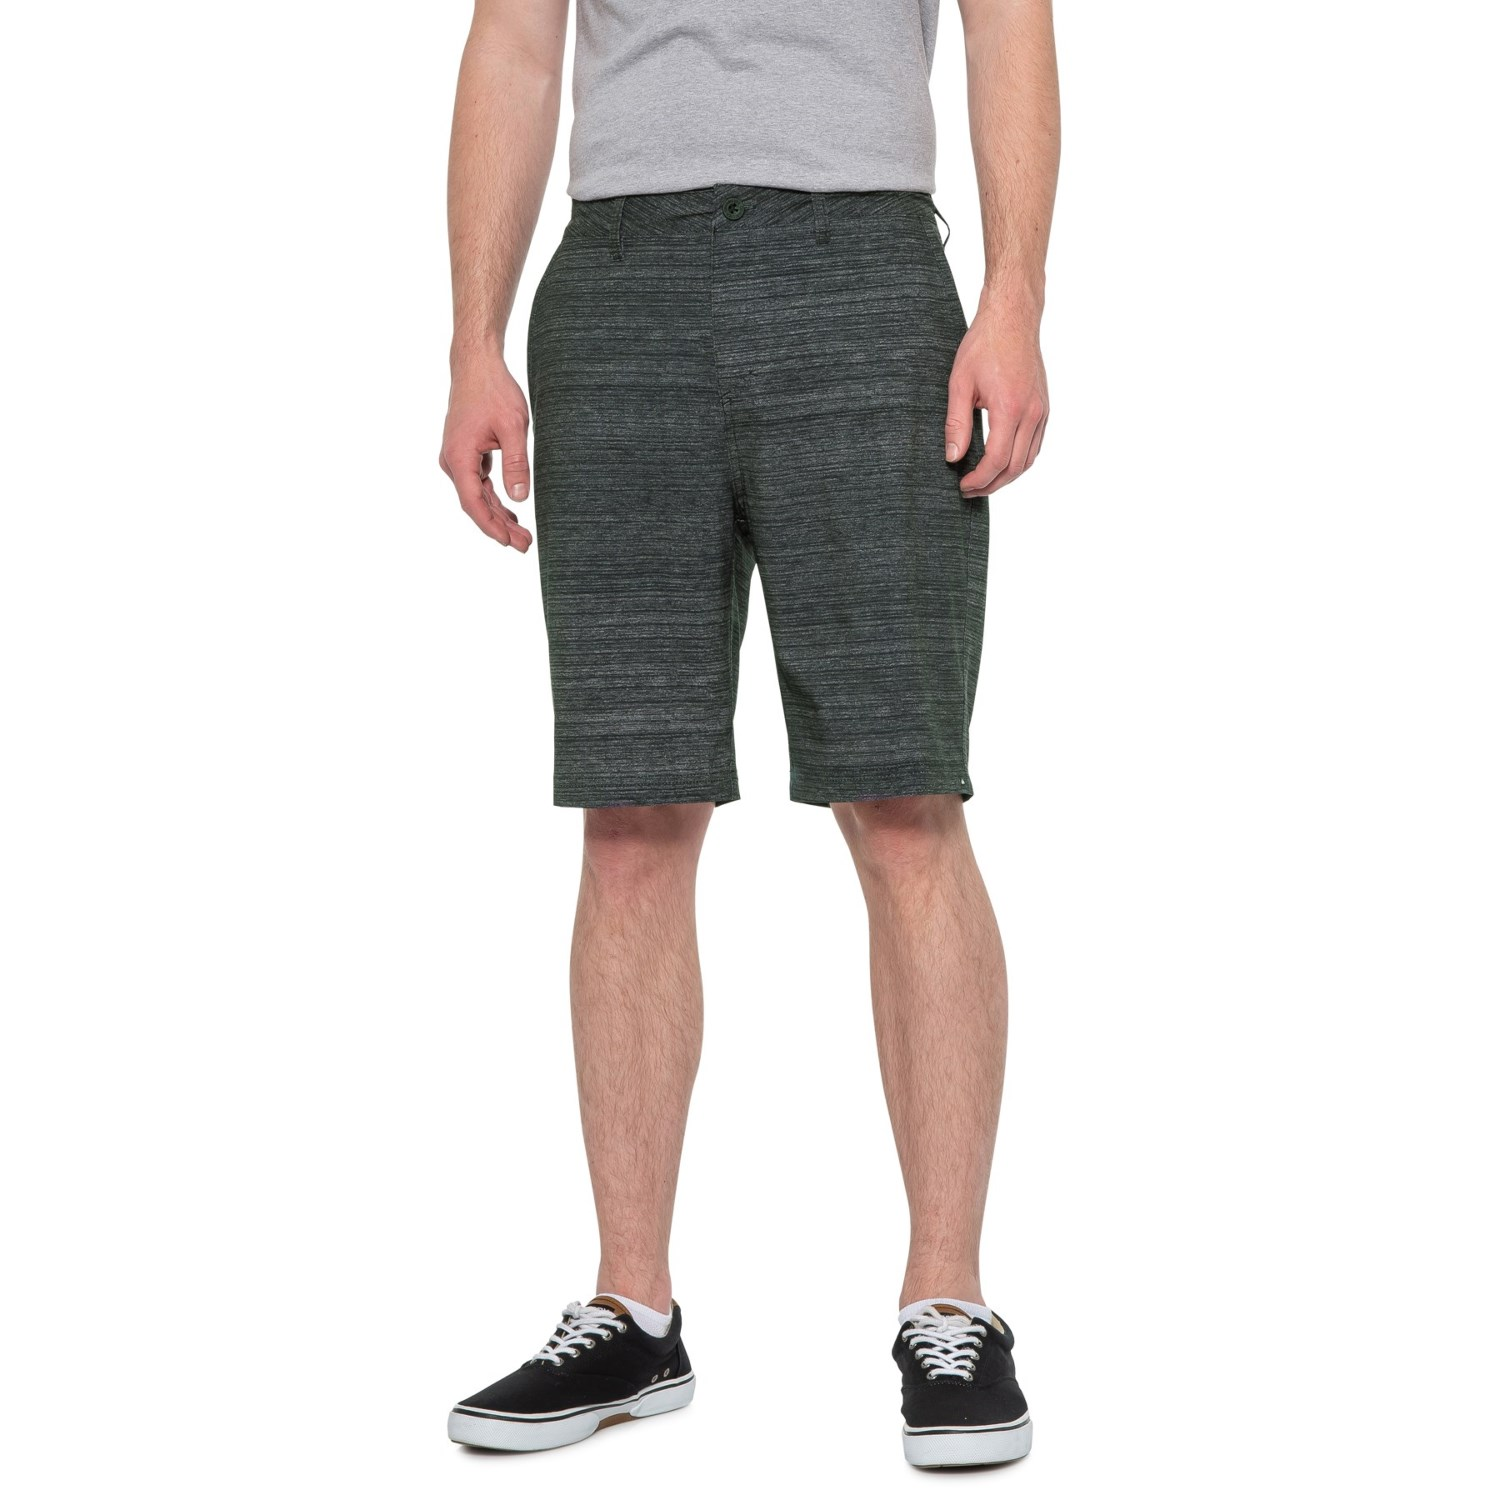 Quiksilver Platypus Amphibian Shorts (For Men) - Save 61%